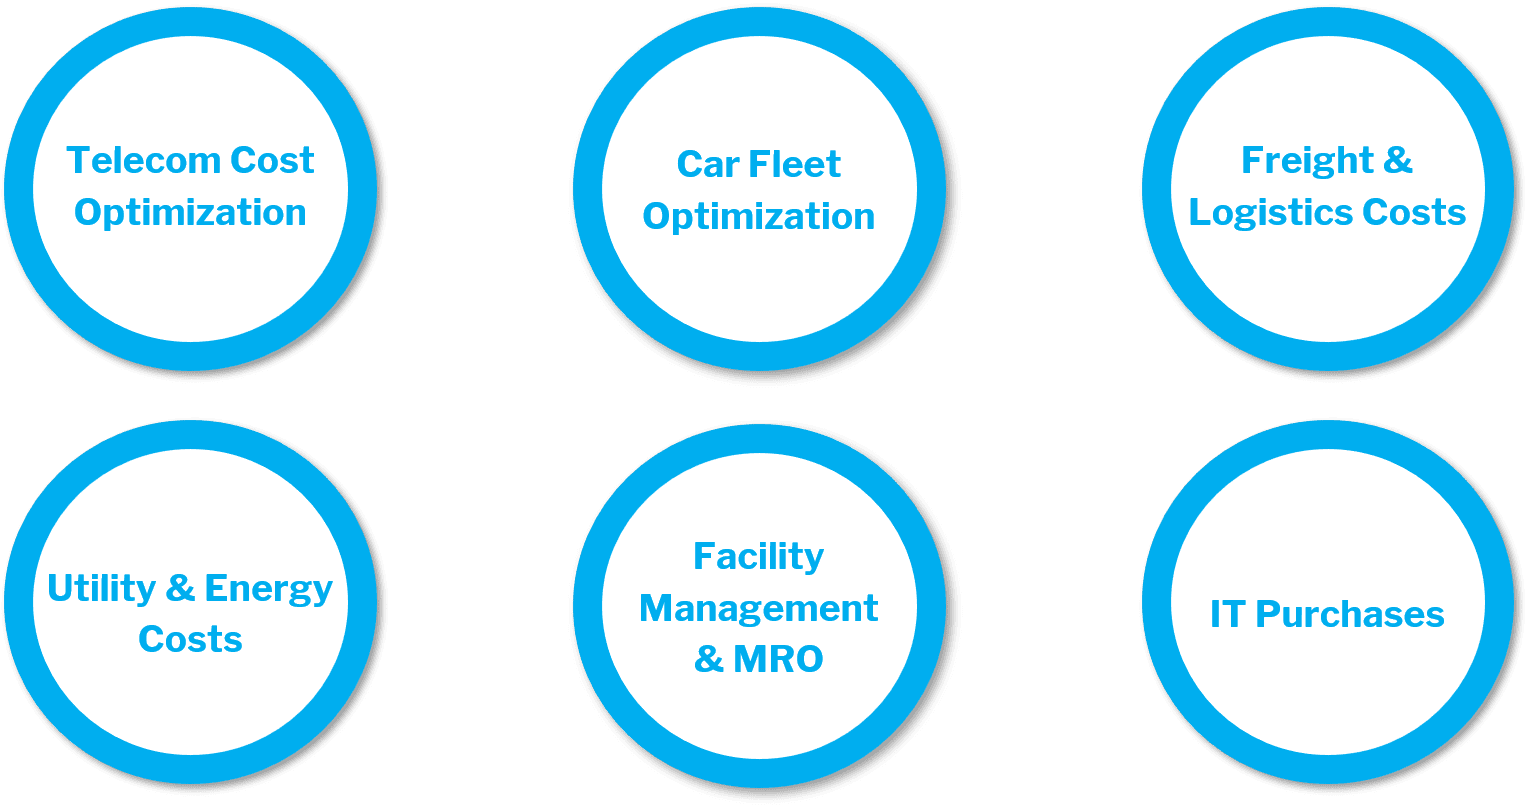 Different categories underneath the Indirect Purchasing umbrella that we achieve success in with our clients: Telecom Cost Optimization, Car Fleet Optimization, Freight & Logistics Costs, Utility & Energy Costs, Facility Management & MRO, and IT Purchases.